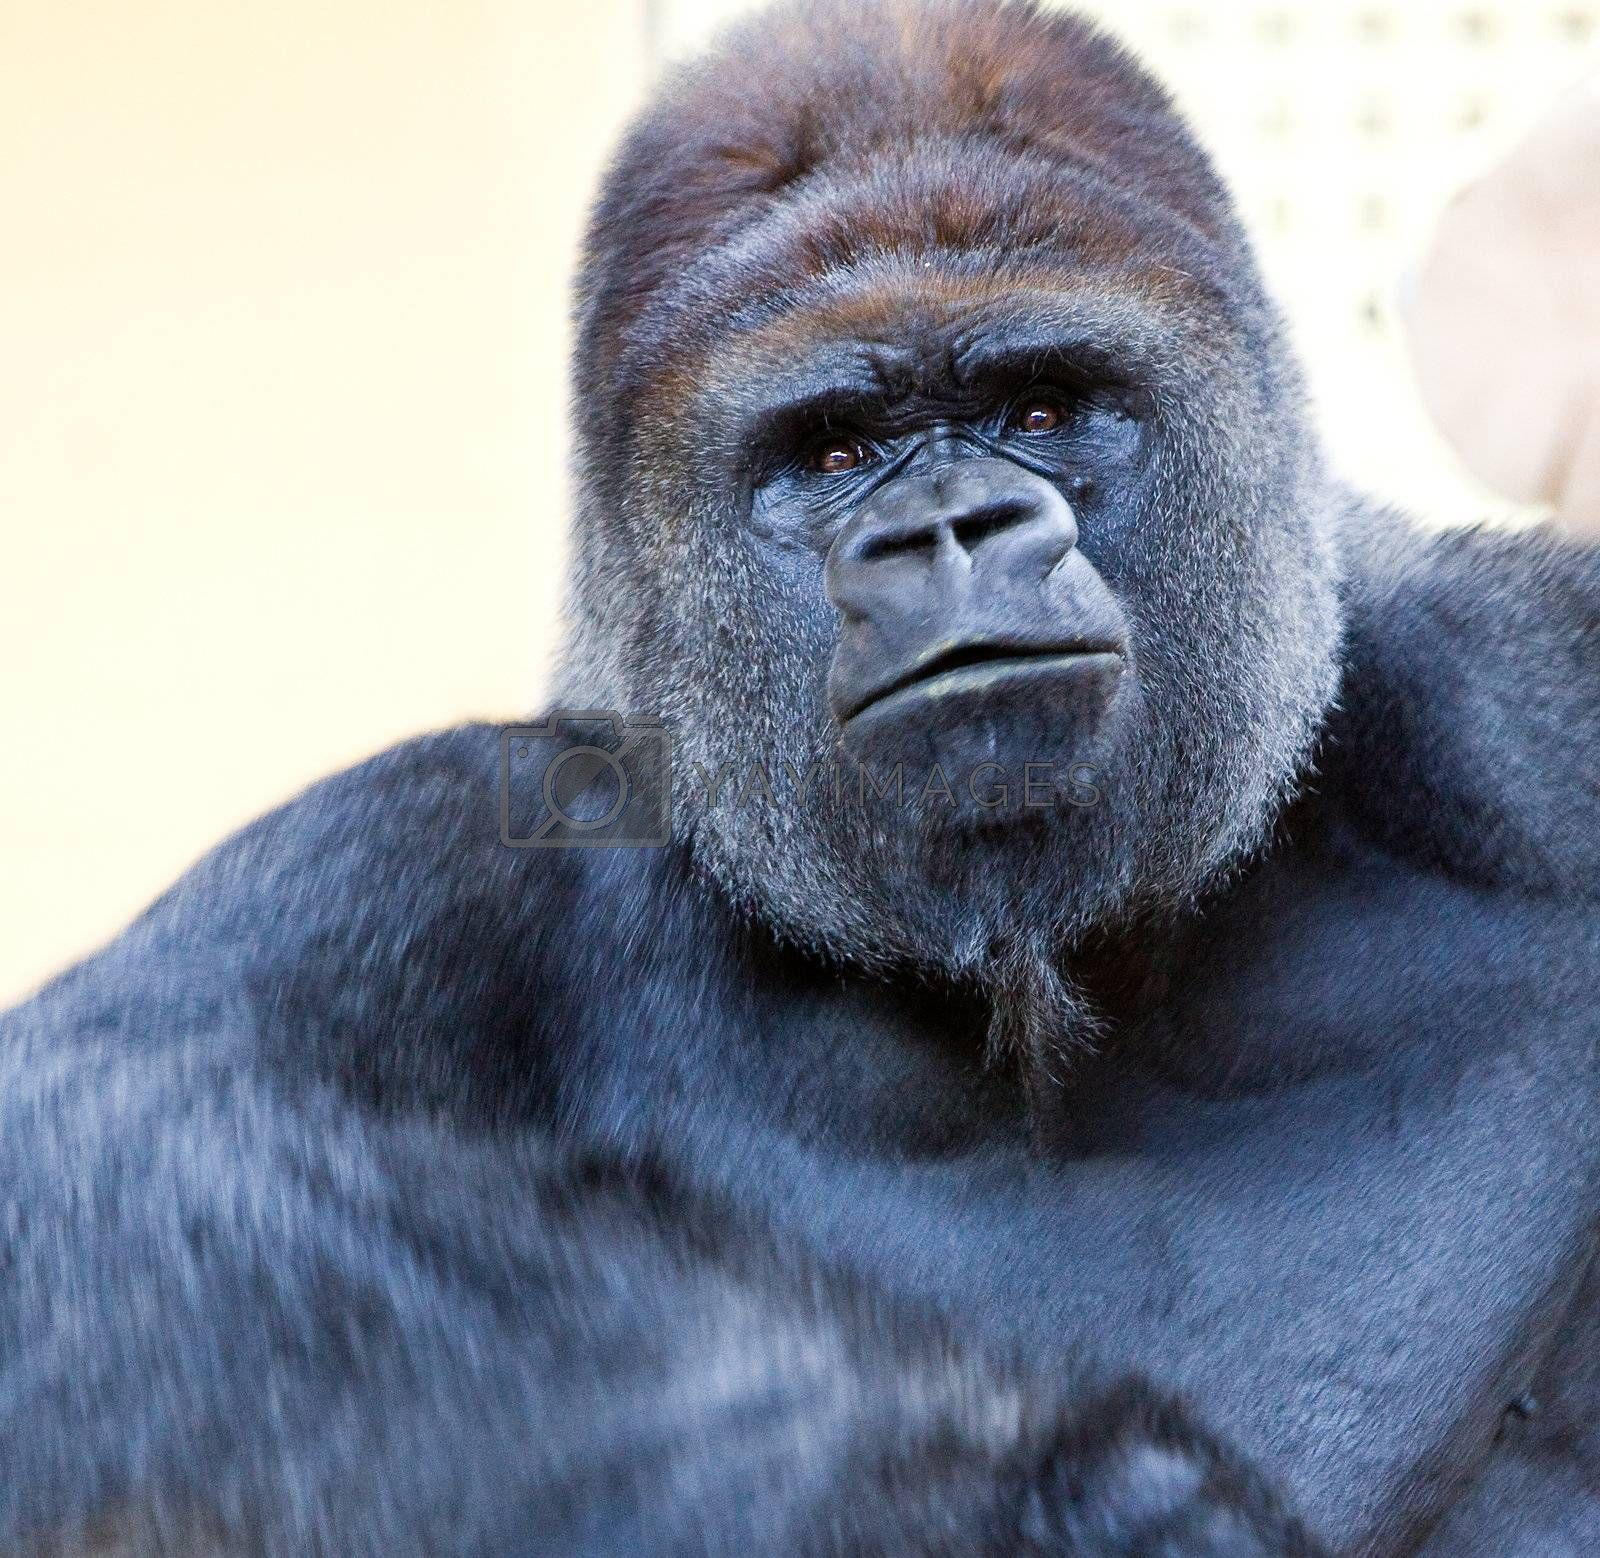 image of a big male silverback gorilla with some expressions